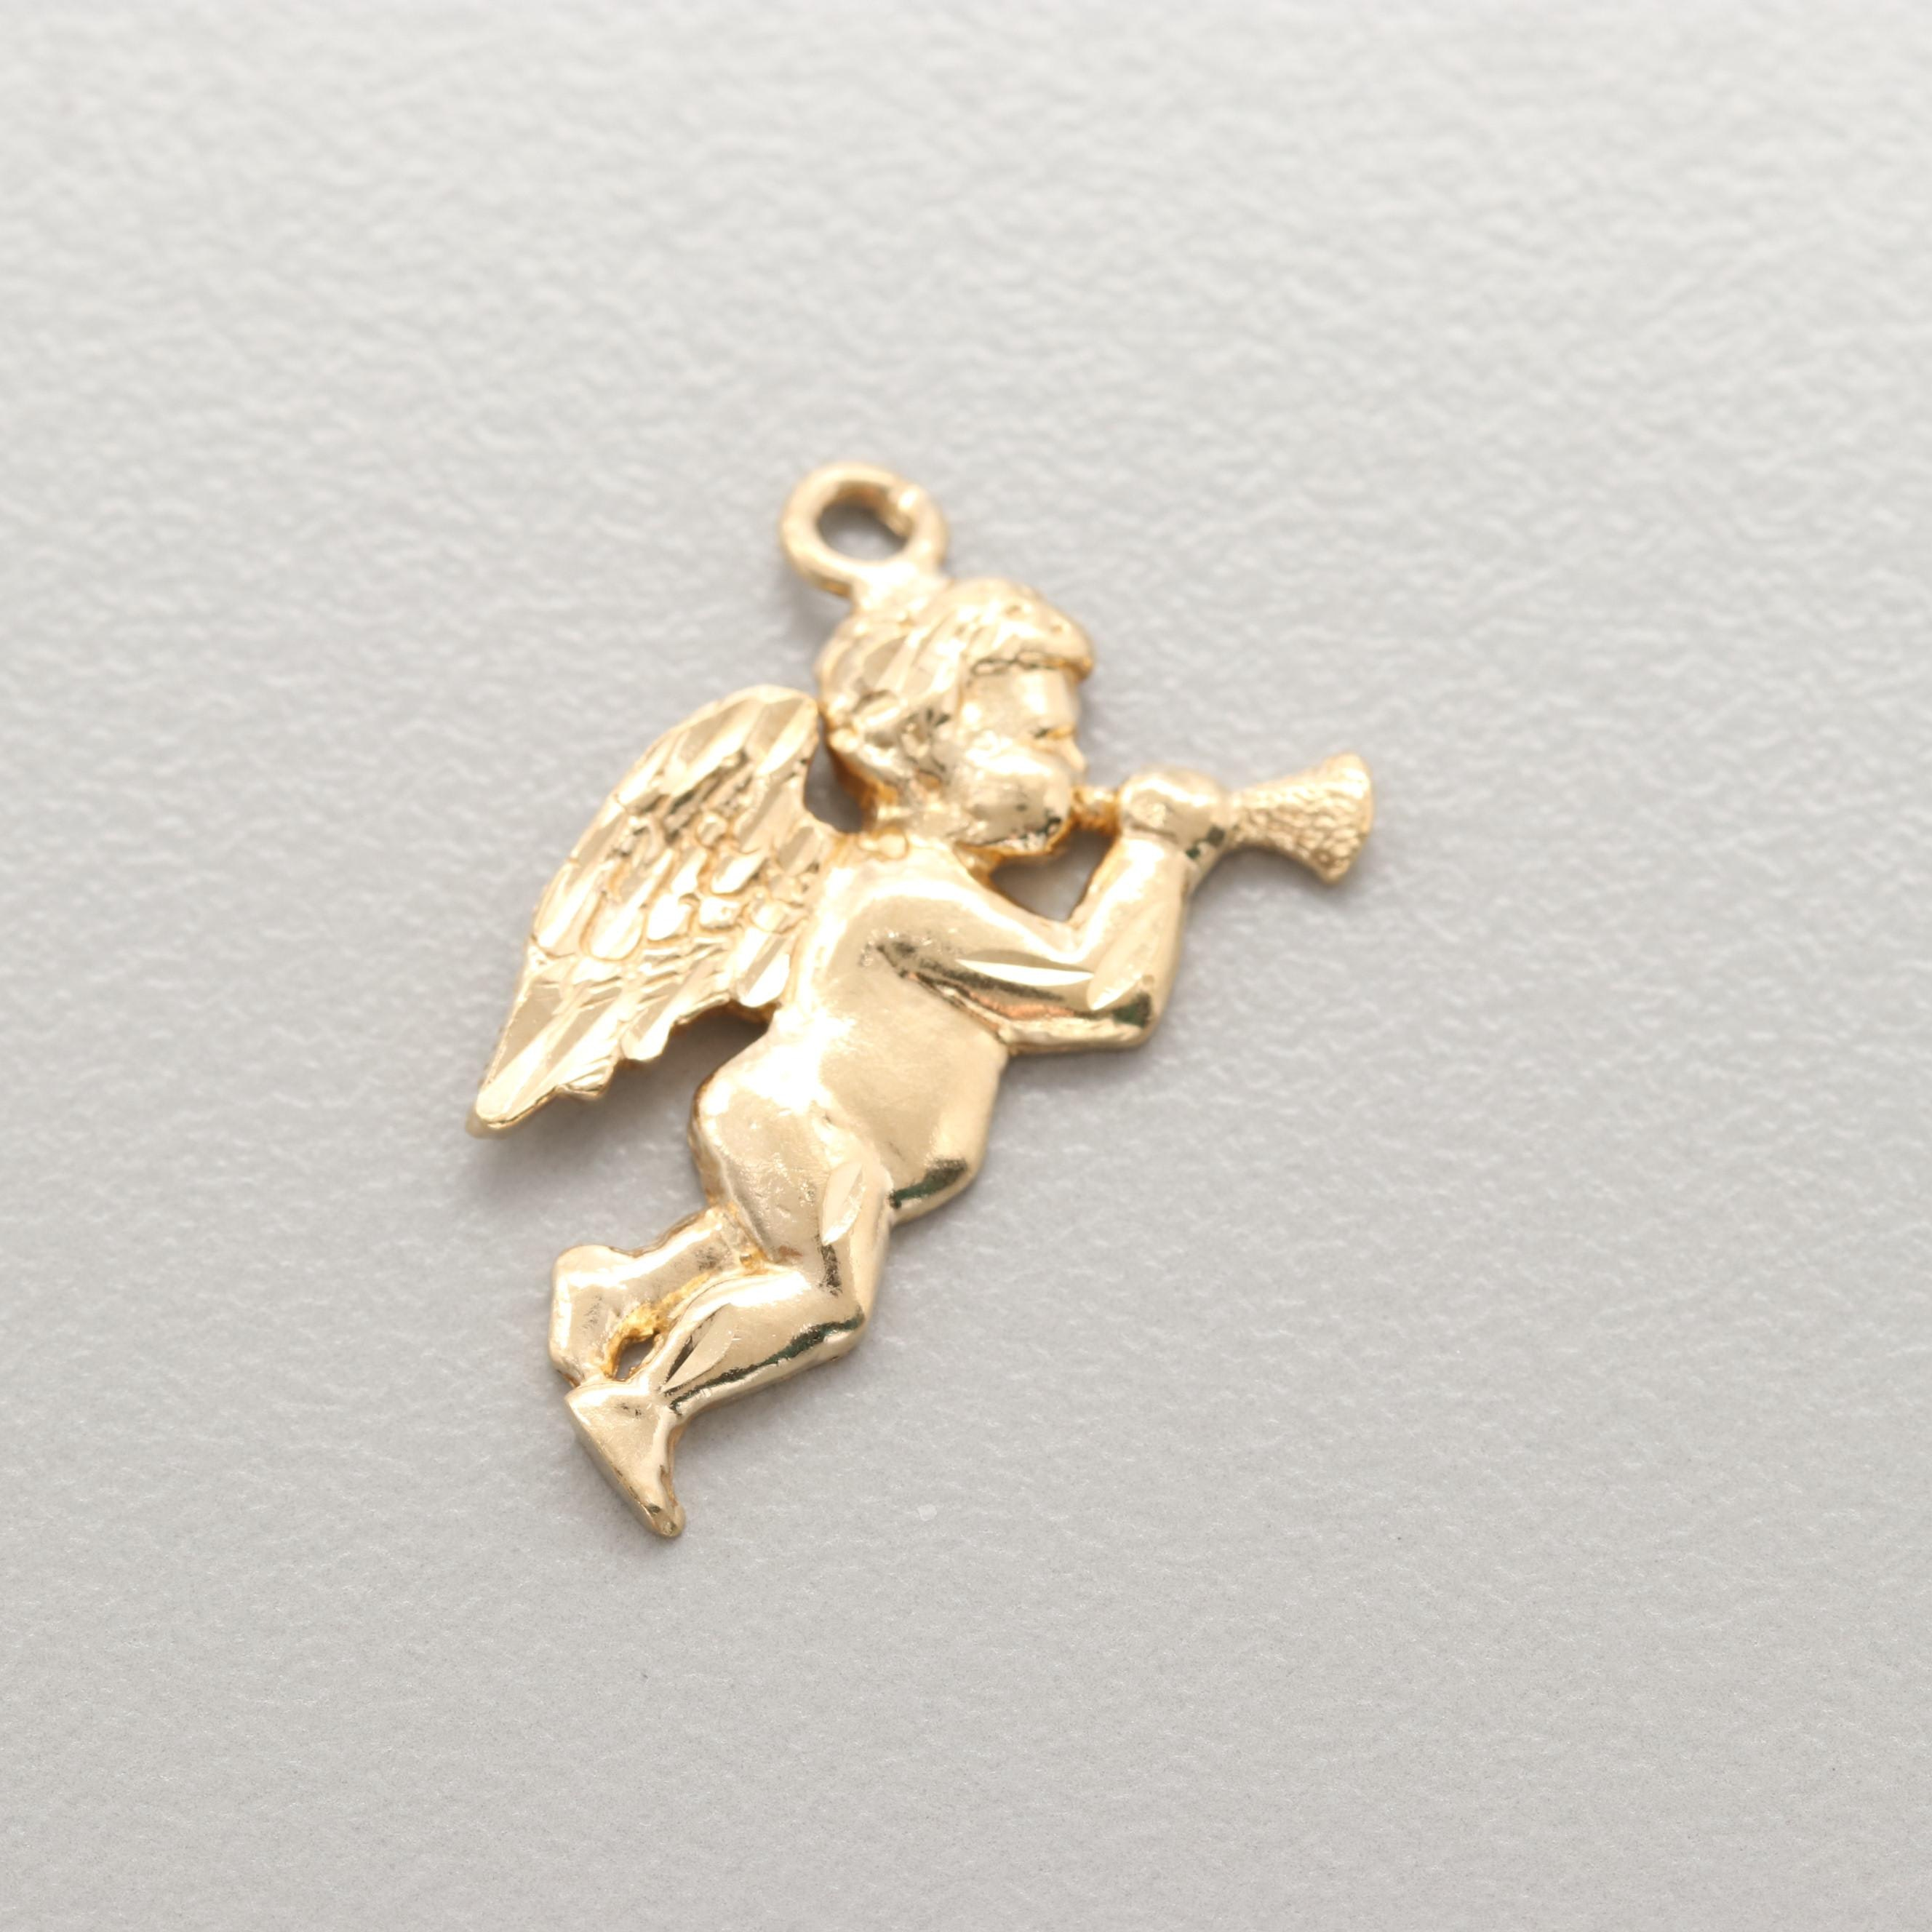 14K Yellow Gold Cherub Charm